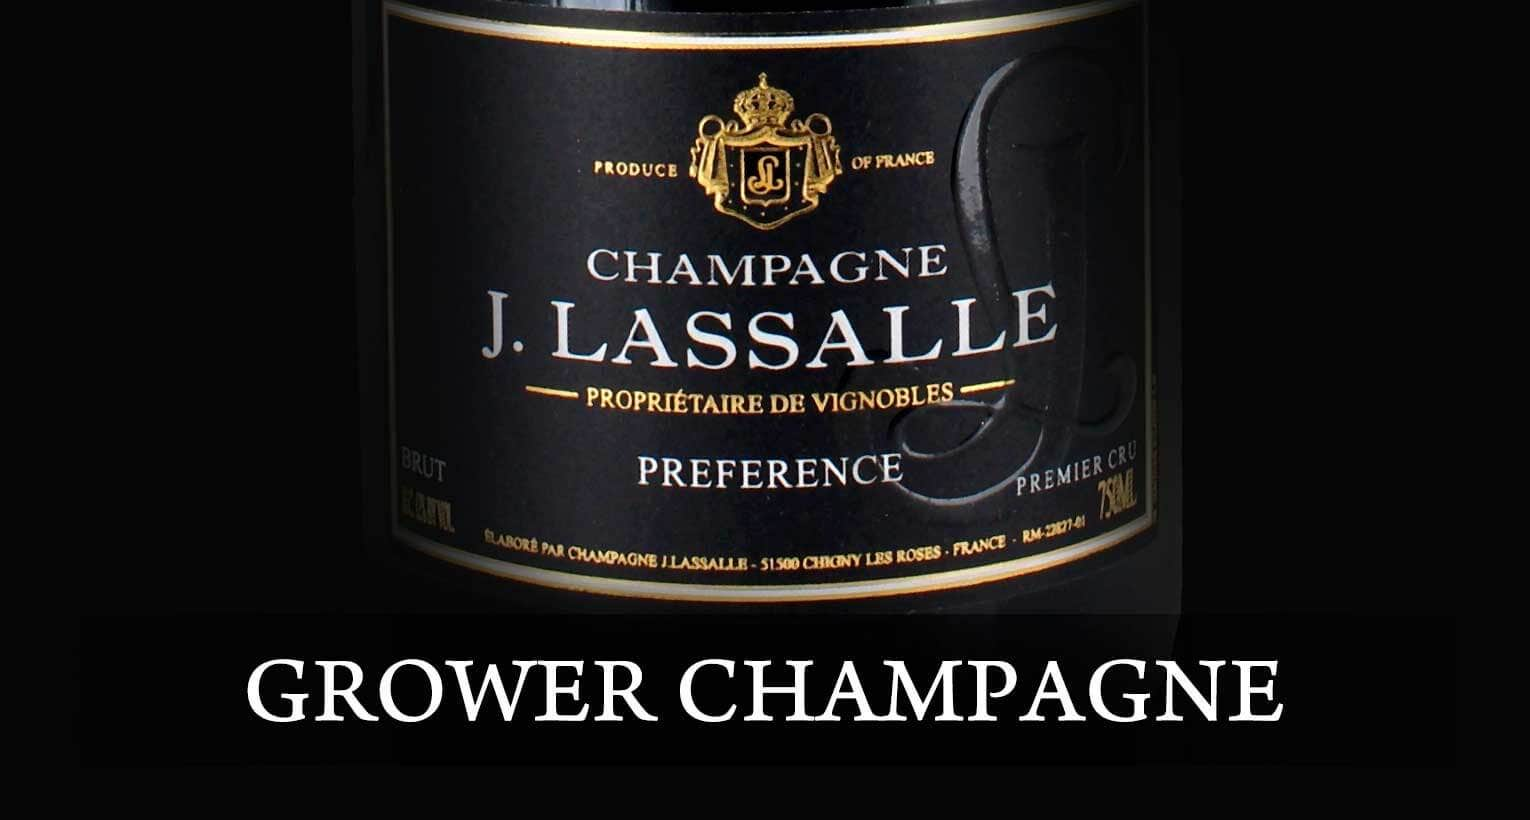 Grower Champagne